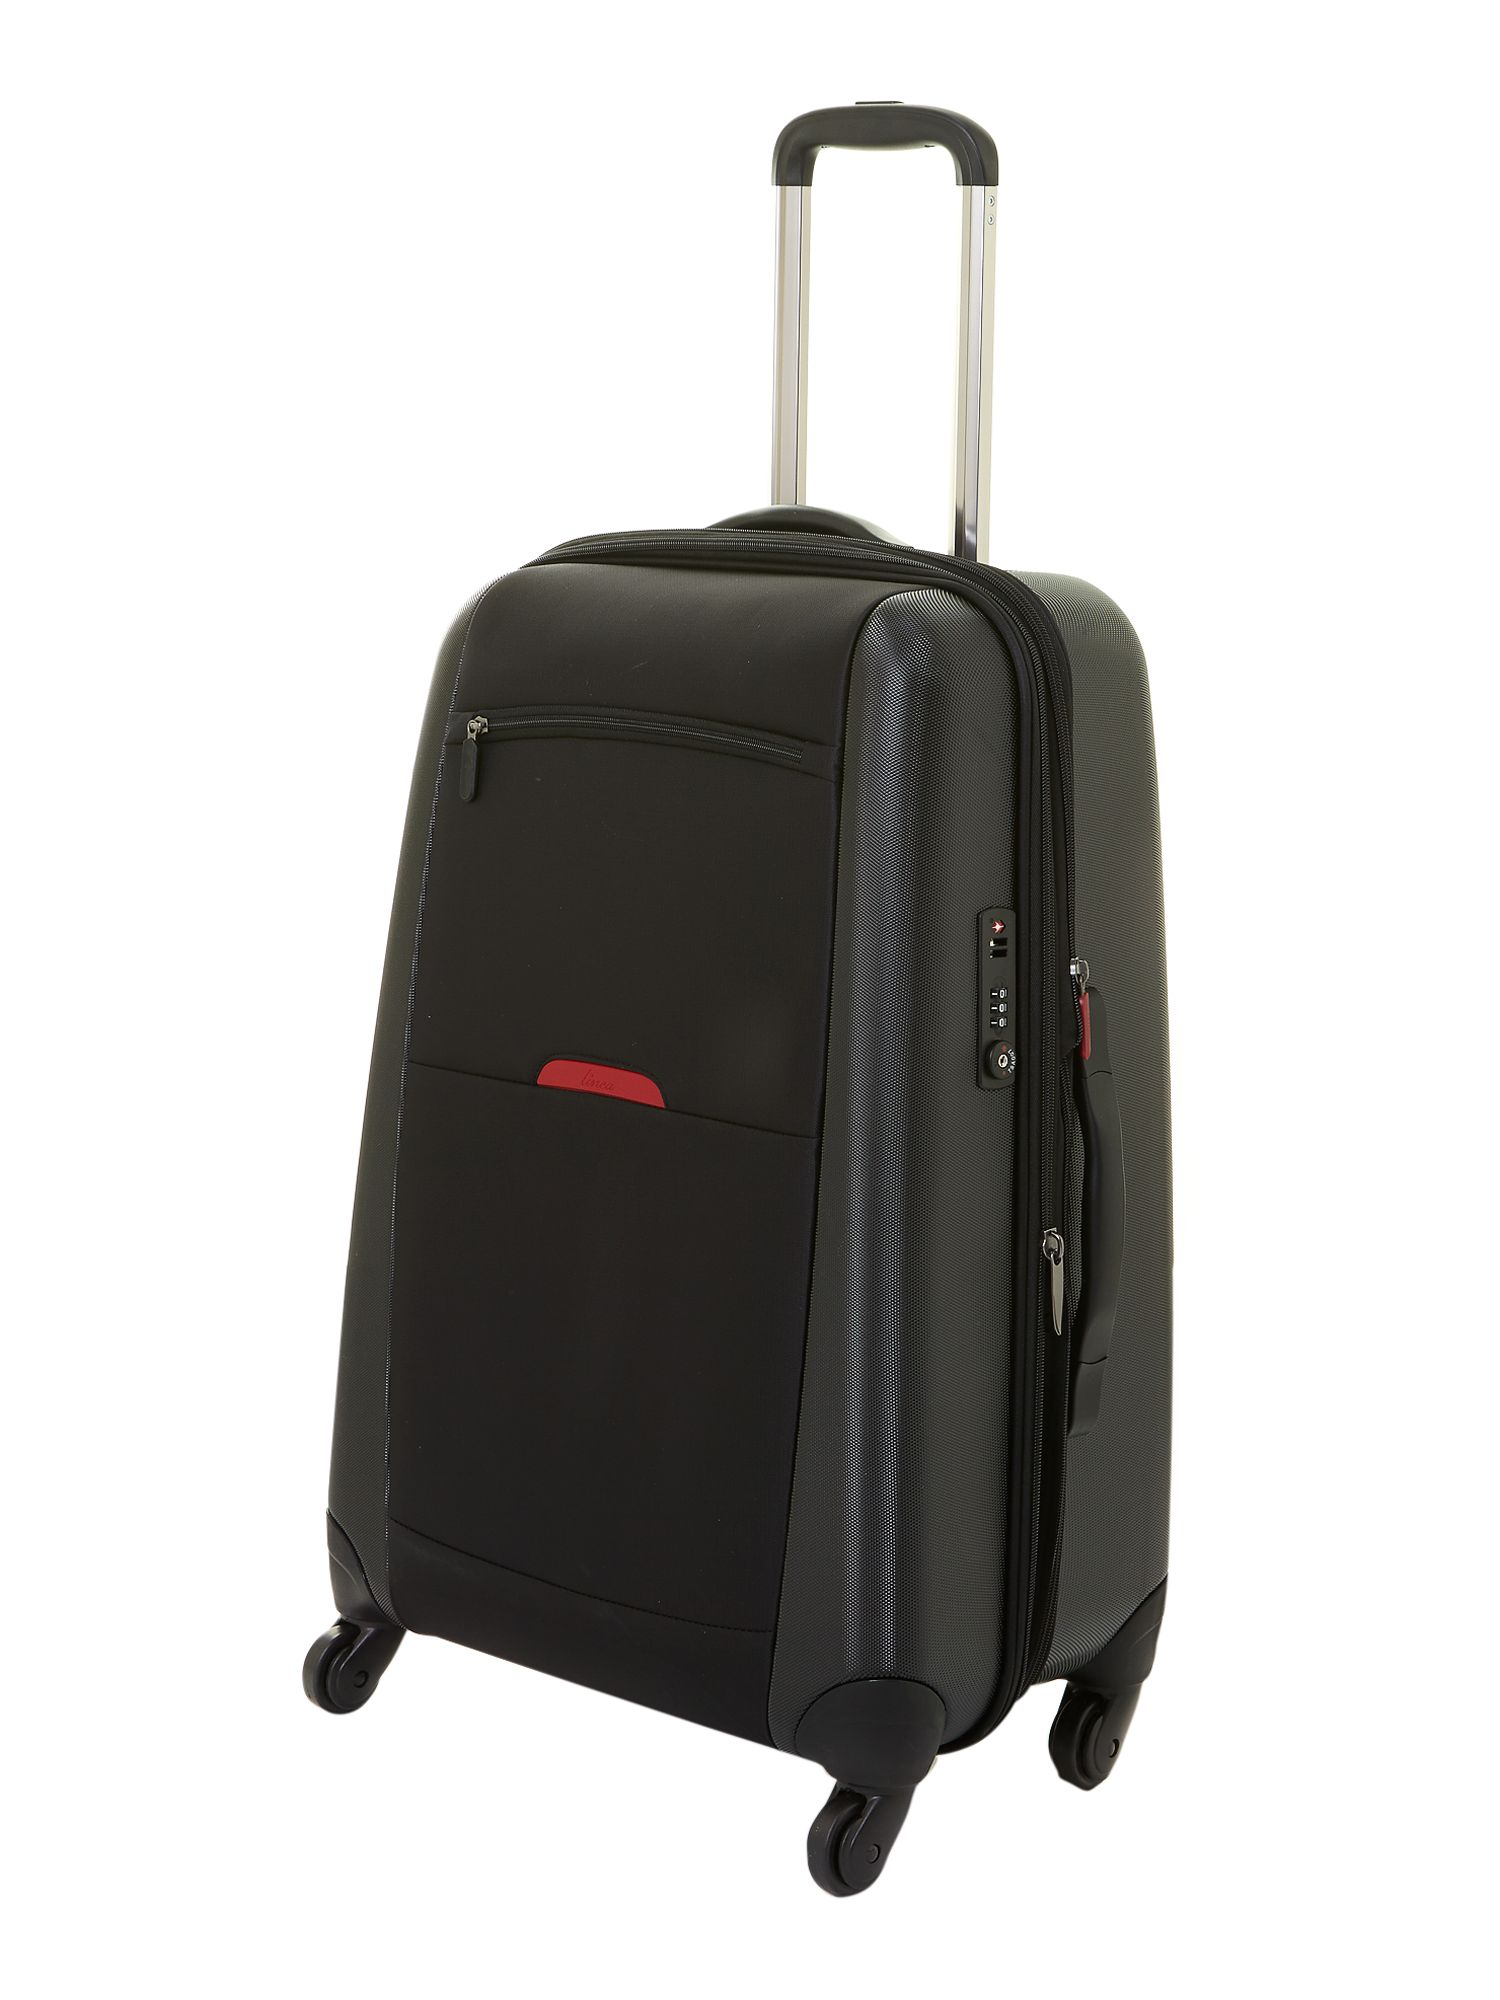 New Hylite 4-Wheel Medium Suitcase